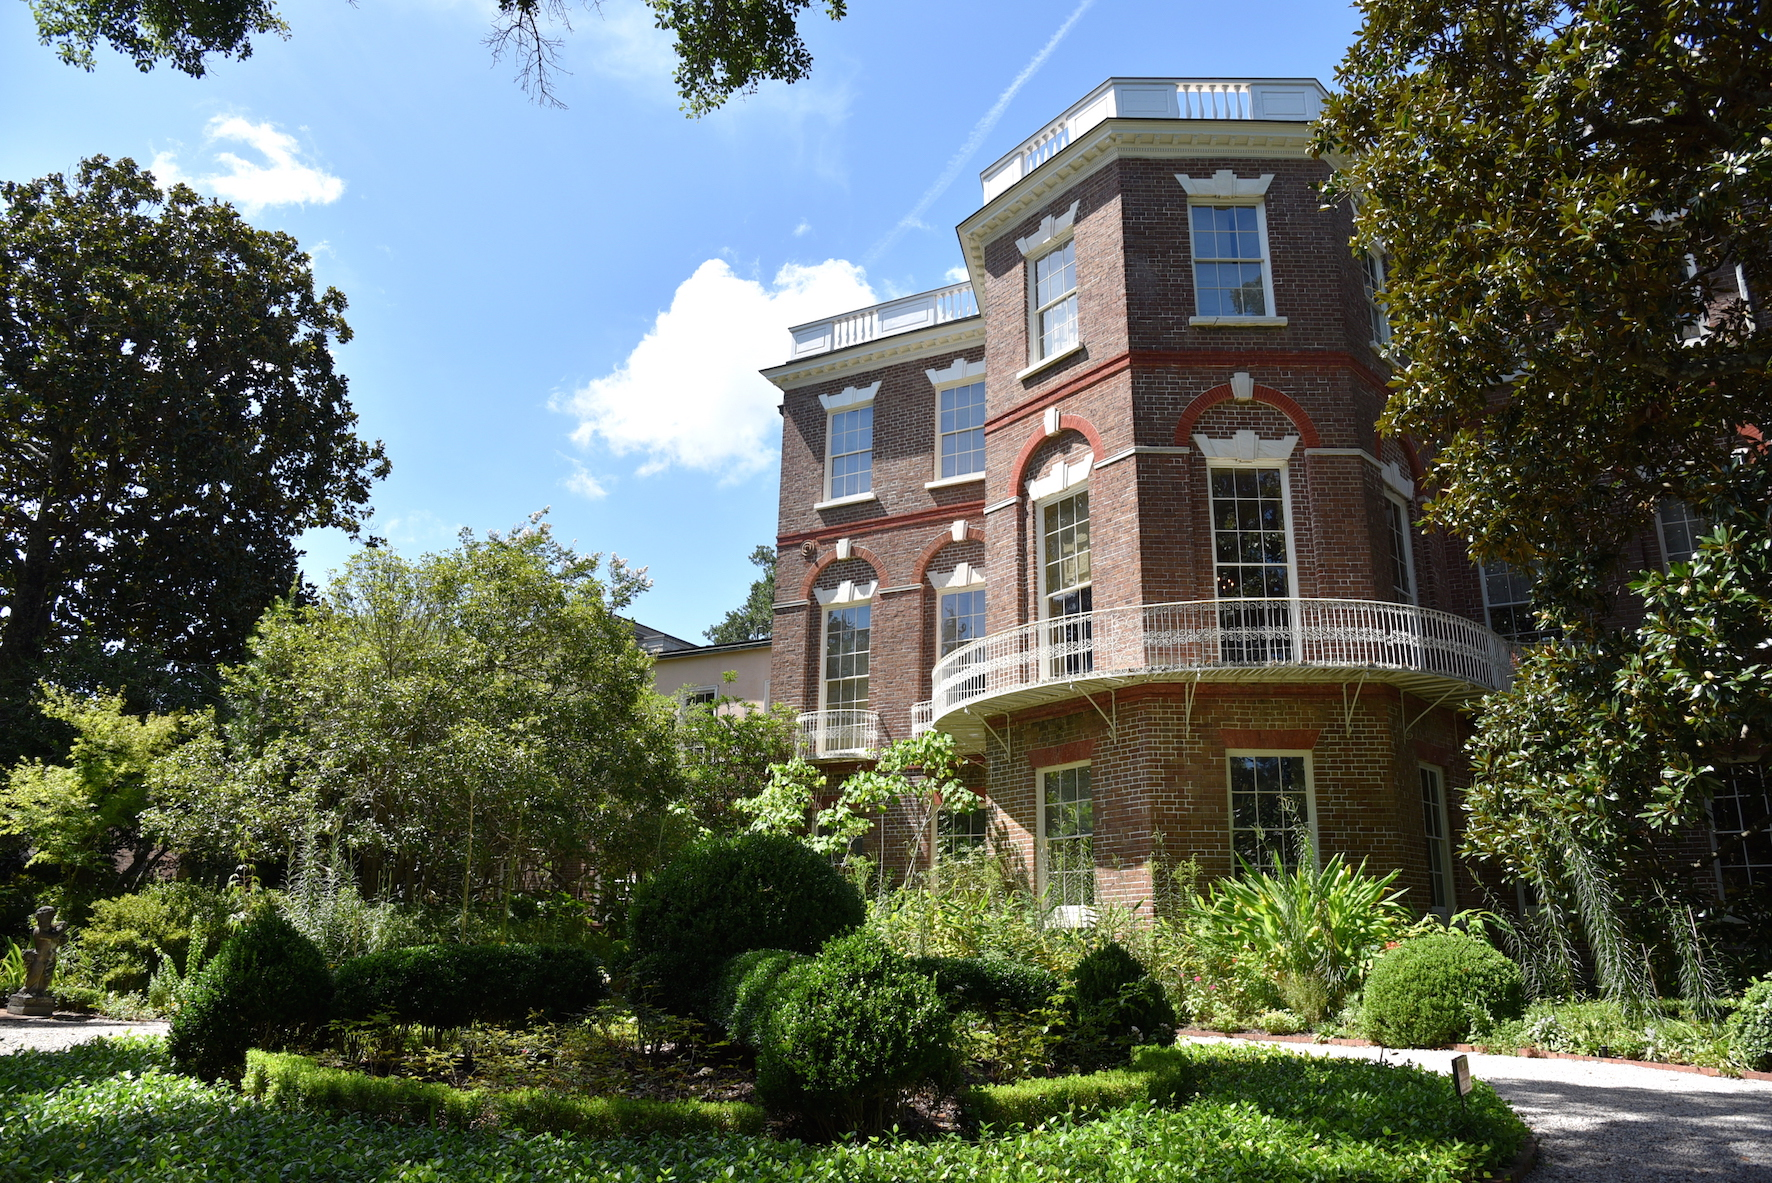 Nathaniel Russel house tour in Charleston, SC